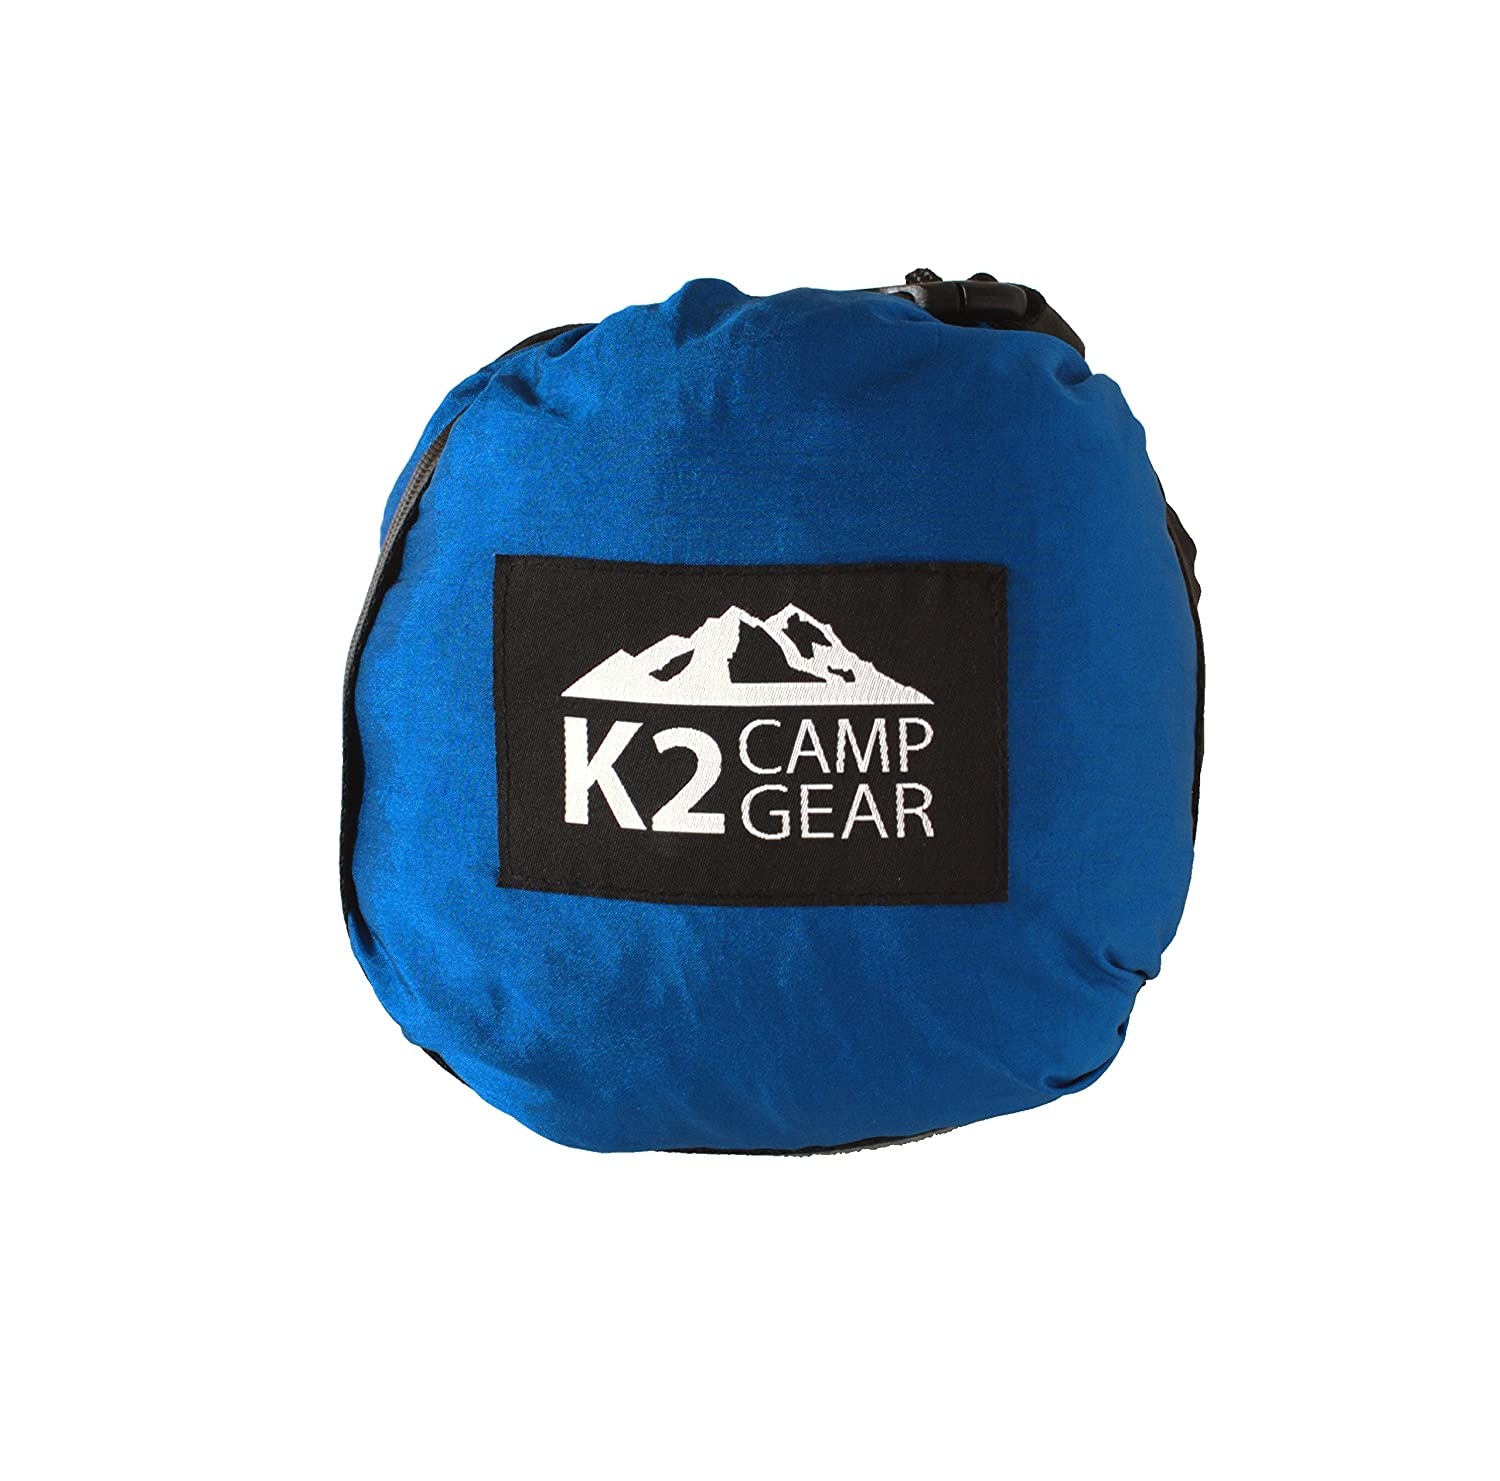 K2 Camp Gear Outdoor Camping Hammock – Premium Aluminum Carabiners and Hanging Ropes Included